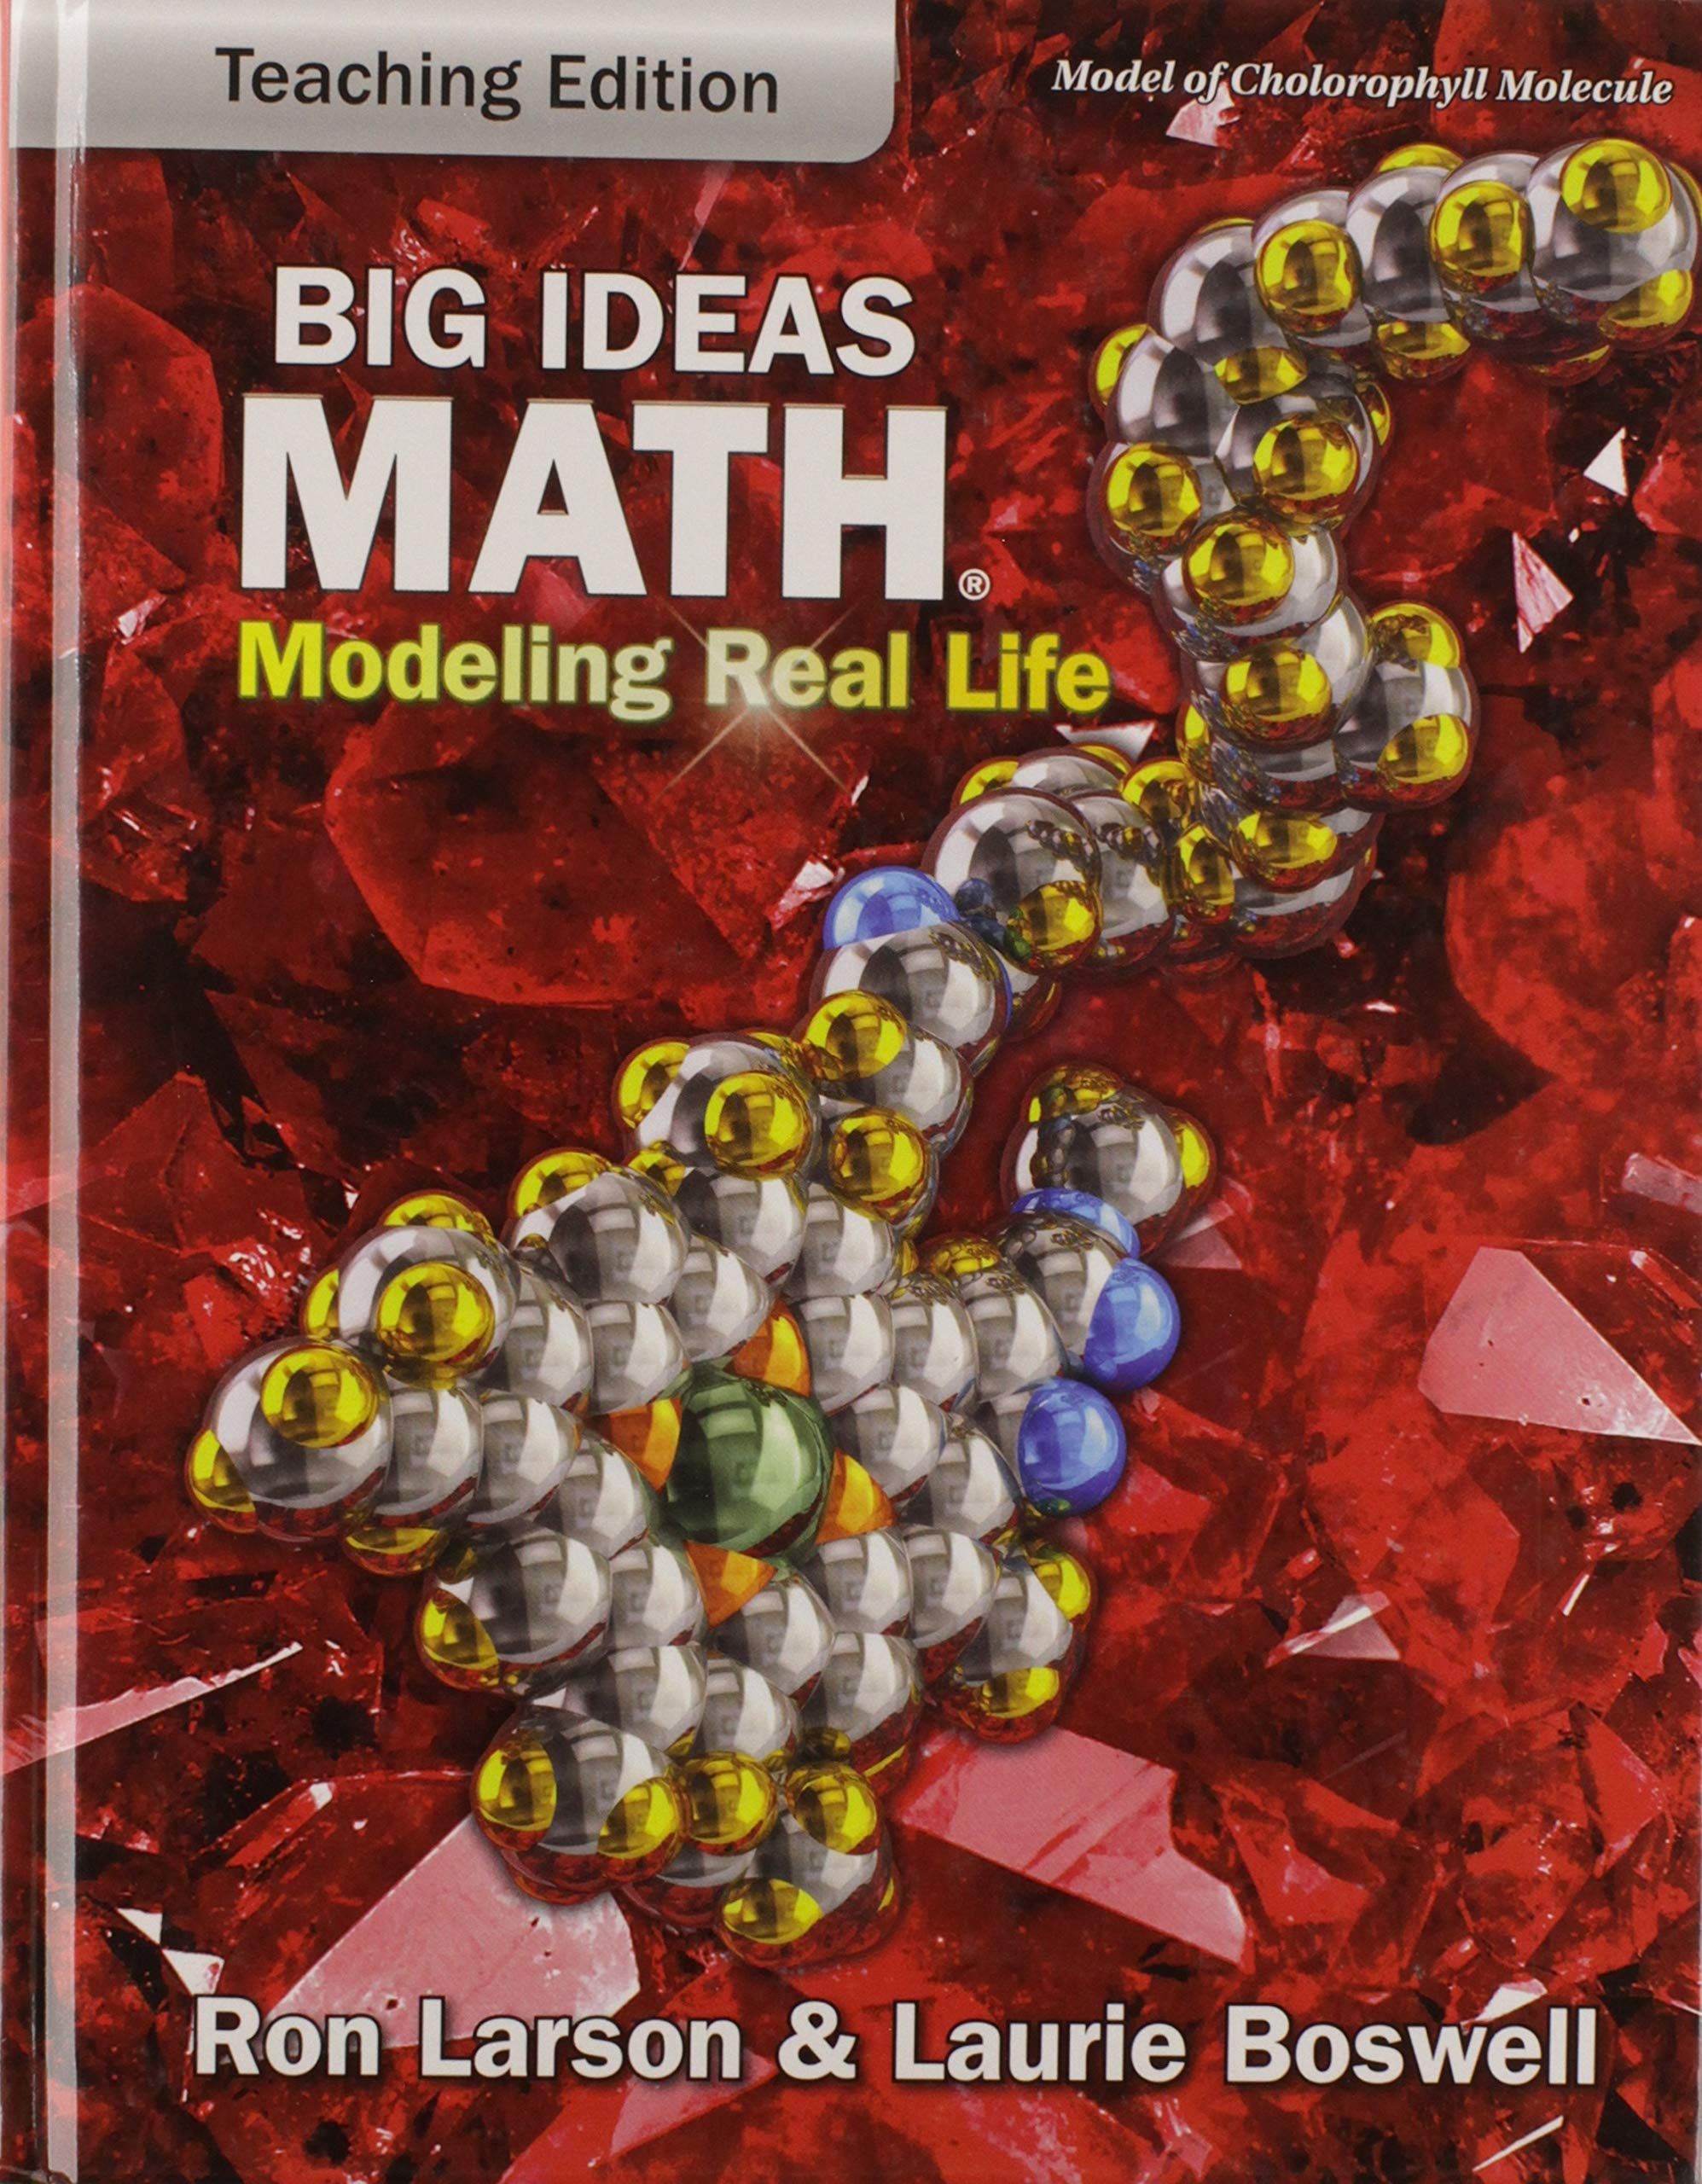 Big Ideas Math: Modeling Real Life - Grade 7 Teaching Edition